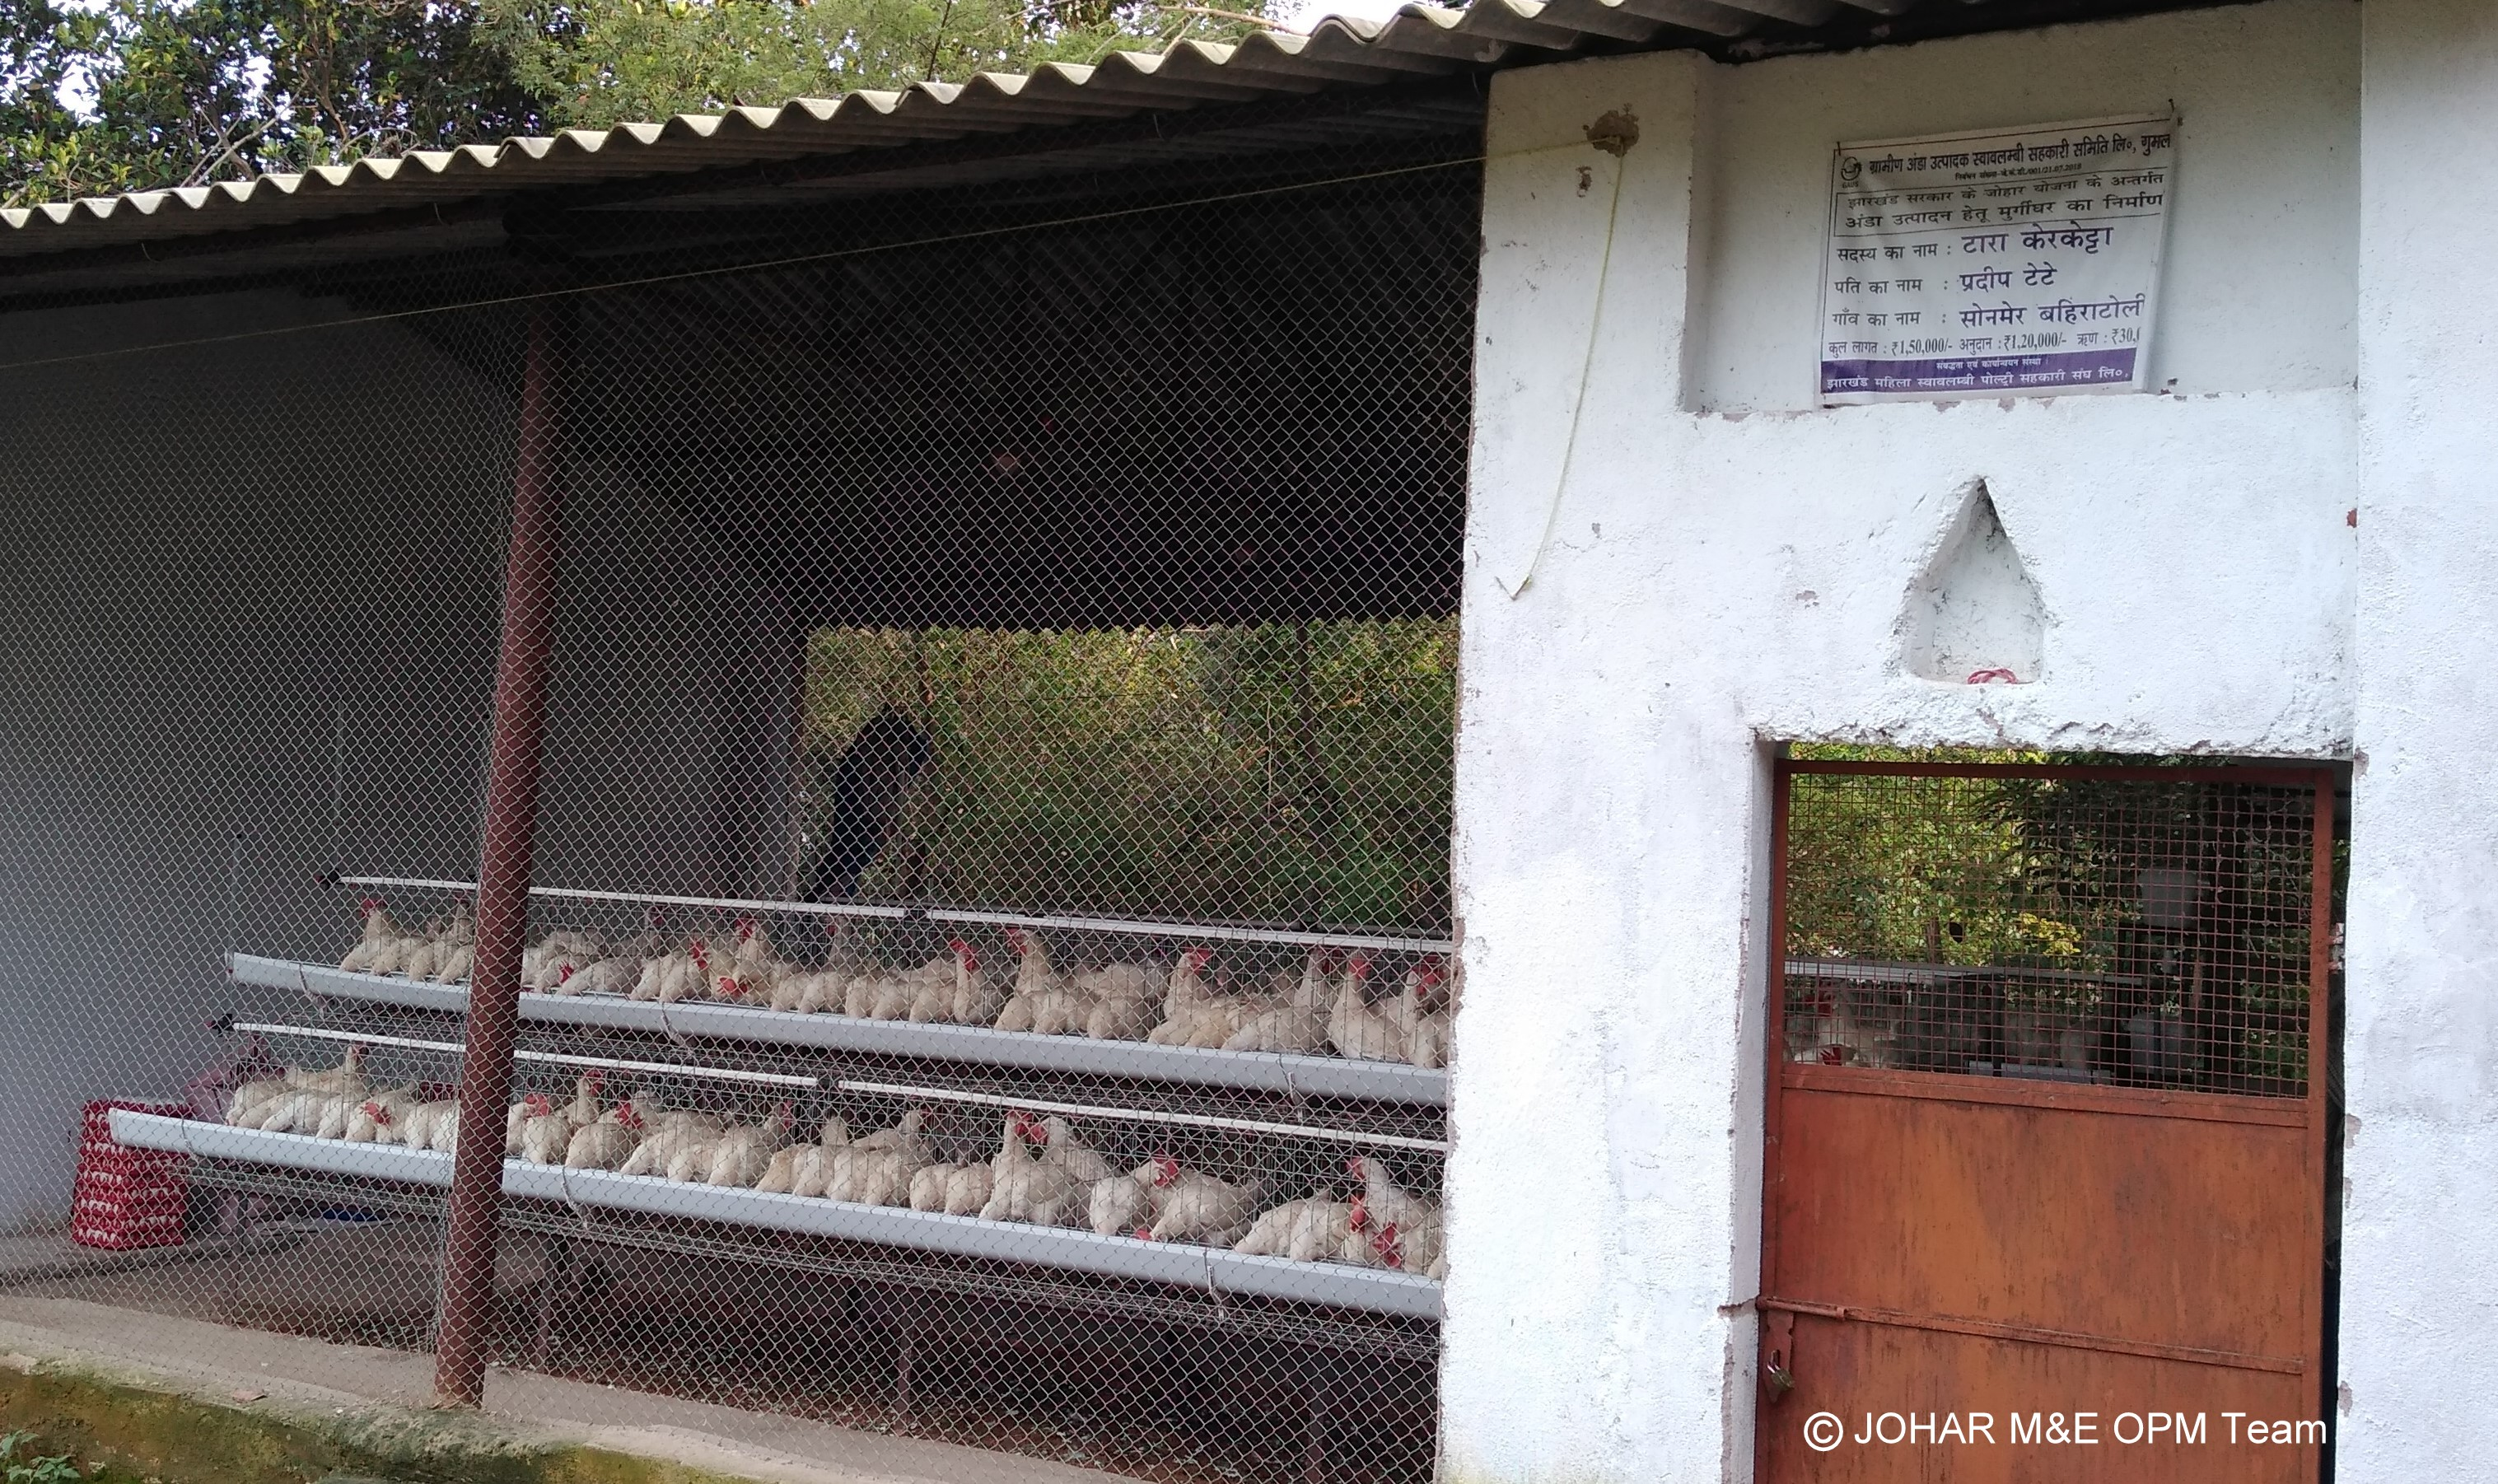 A layer farm supported by the JOHAR project – Copy